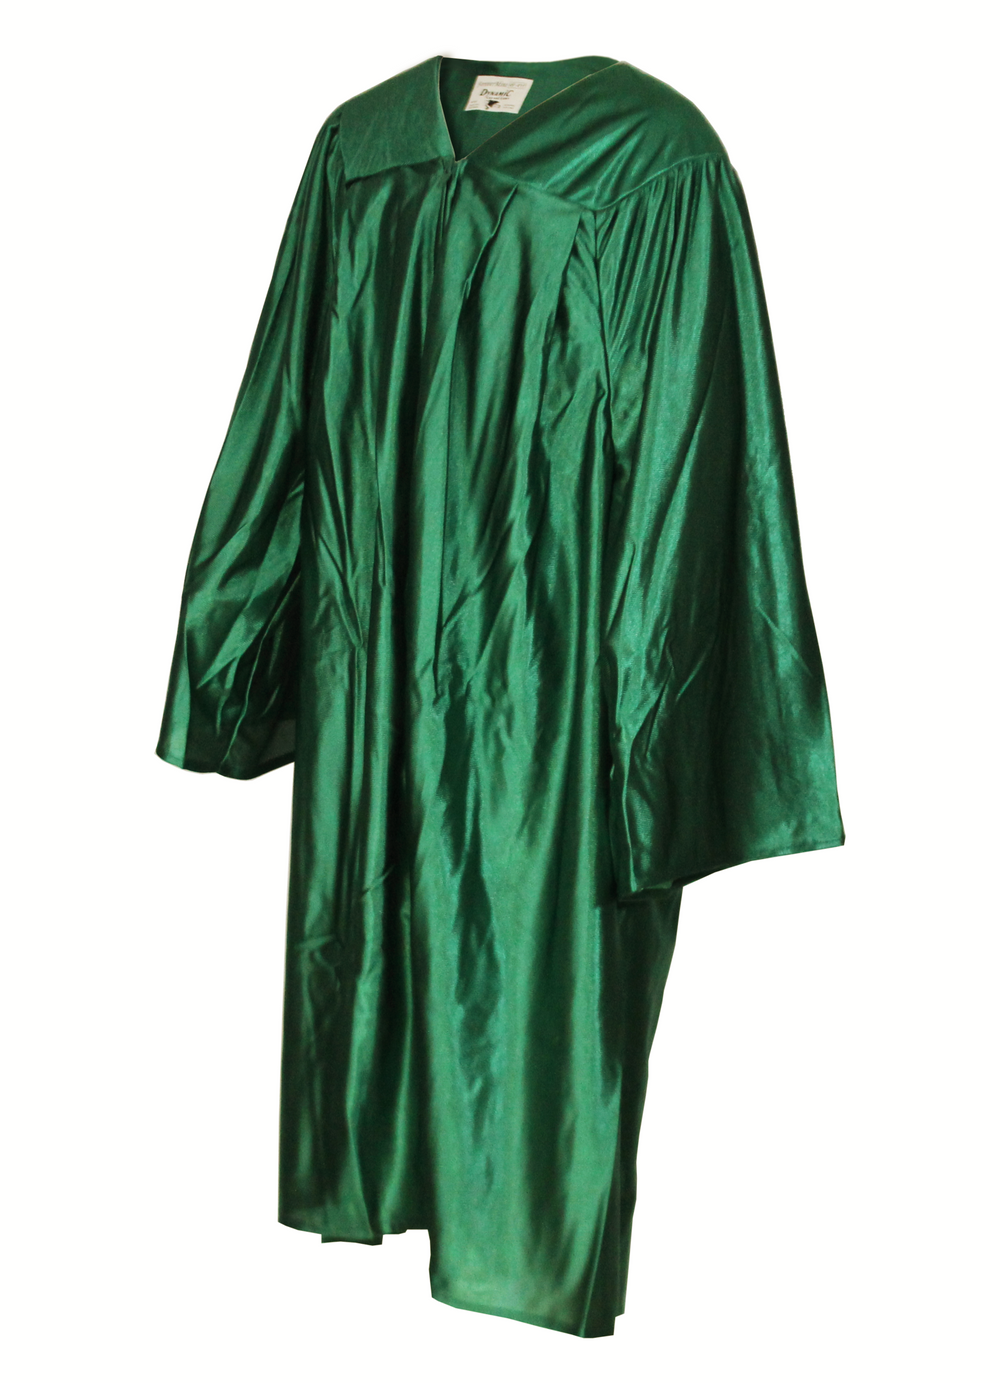 Shiny Kelly Green Choir Gown